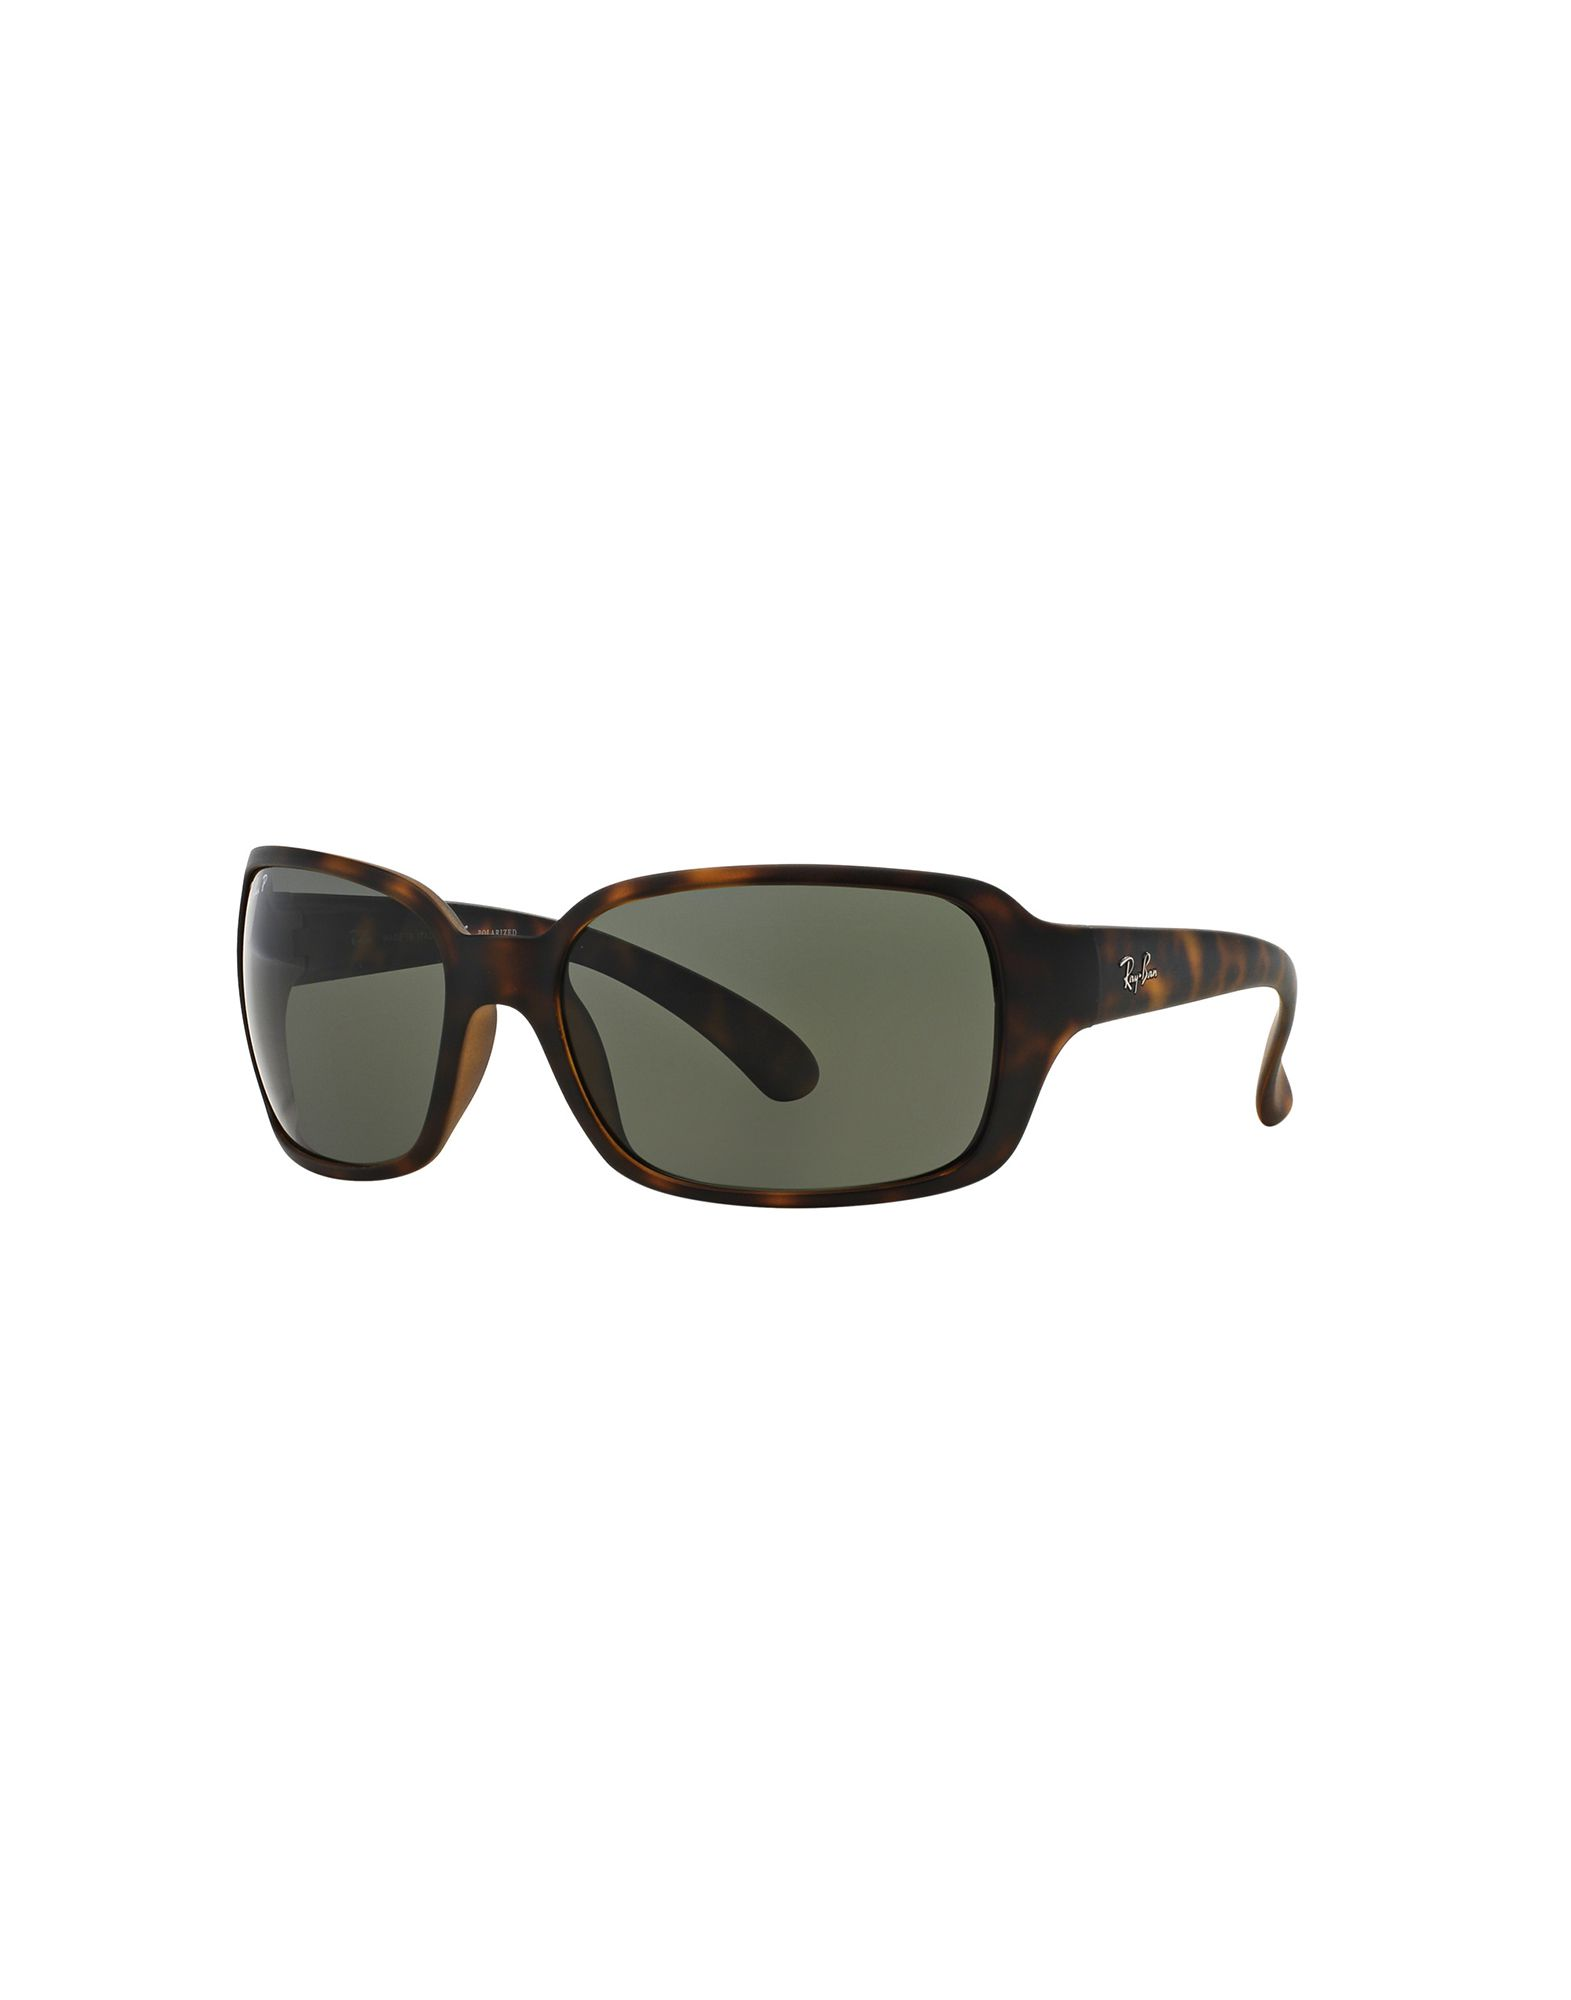 Occhiali Da Sole Ray-Ban Rb4068 - Donna - Acquista online su